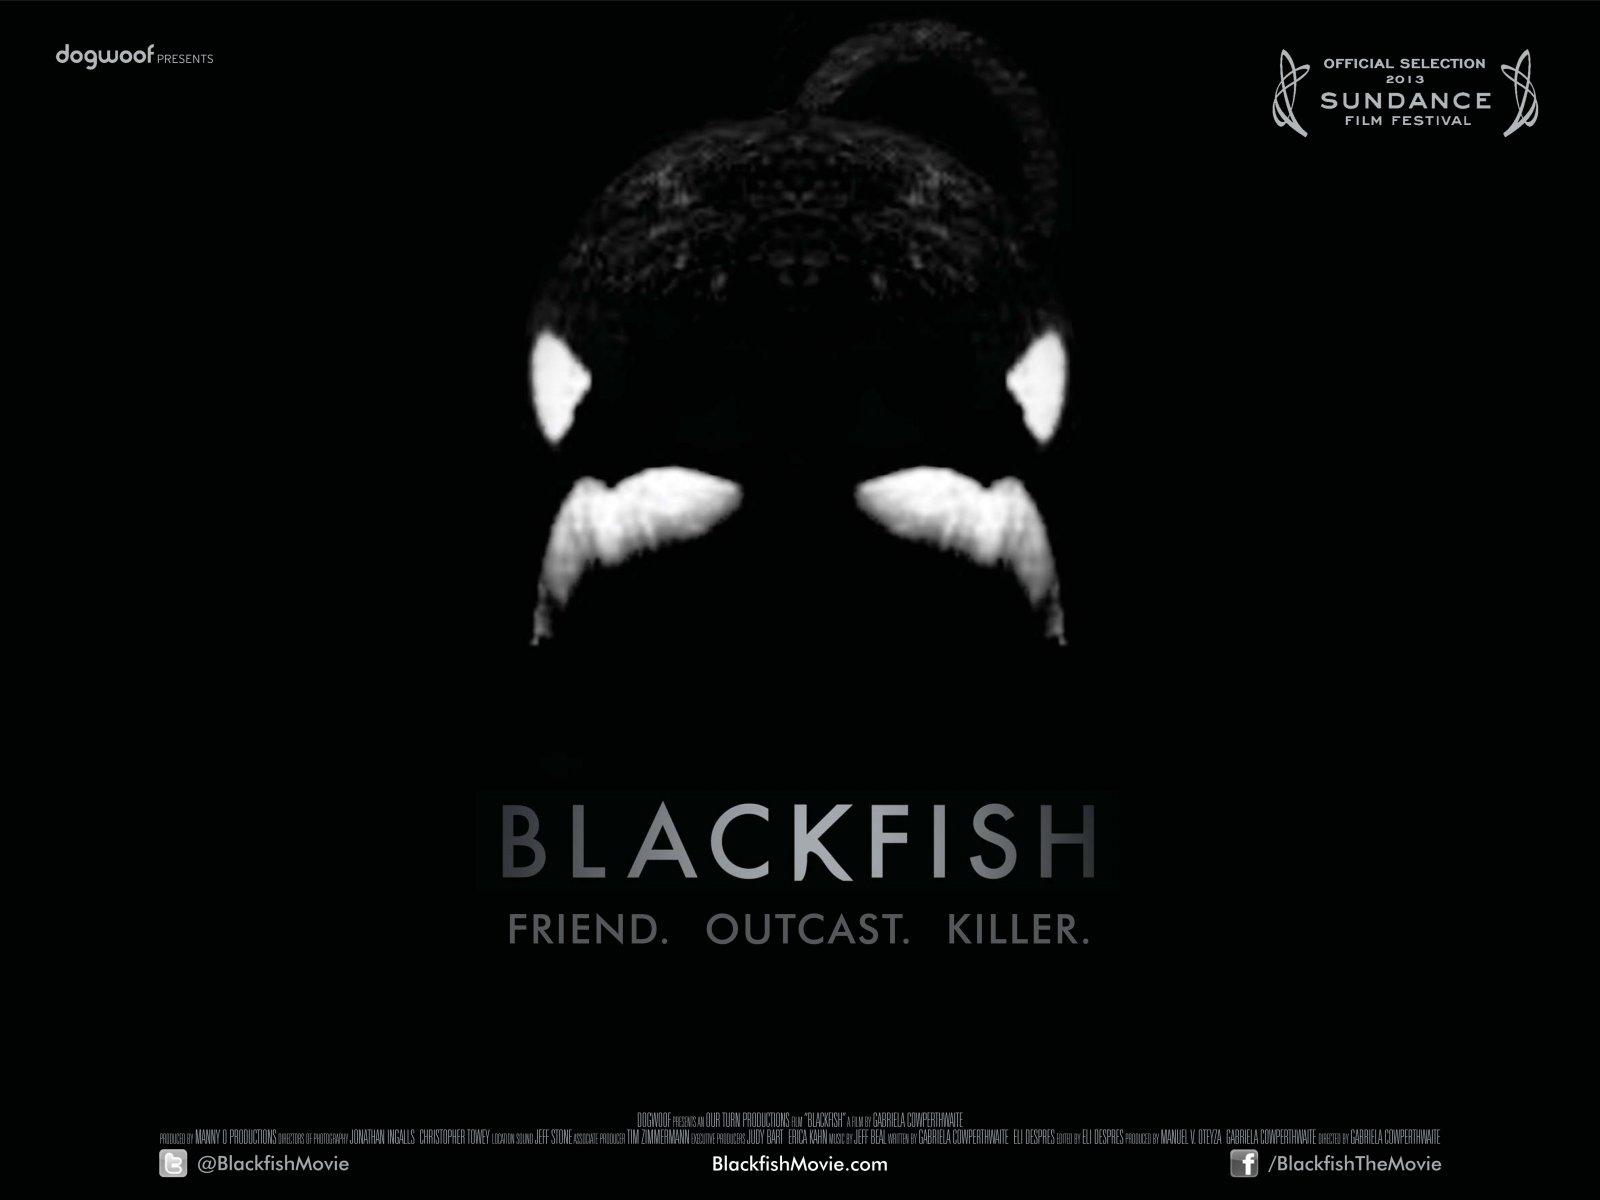 7 Quotes From Black Fish That Speak To More Than Whale Captivity 1600x1200